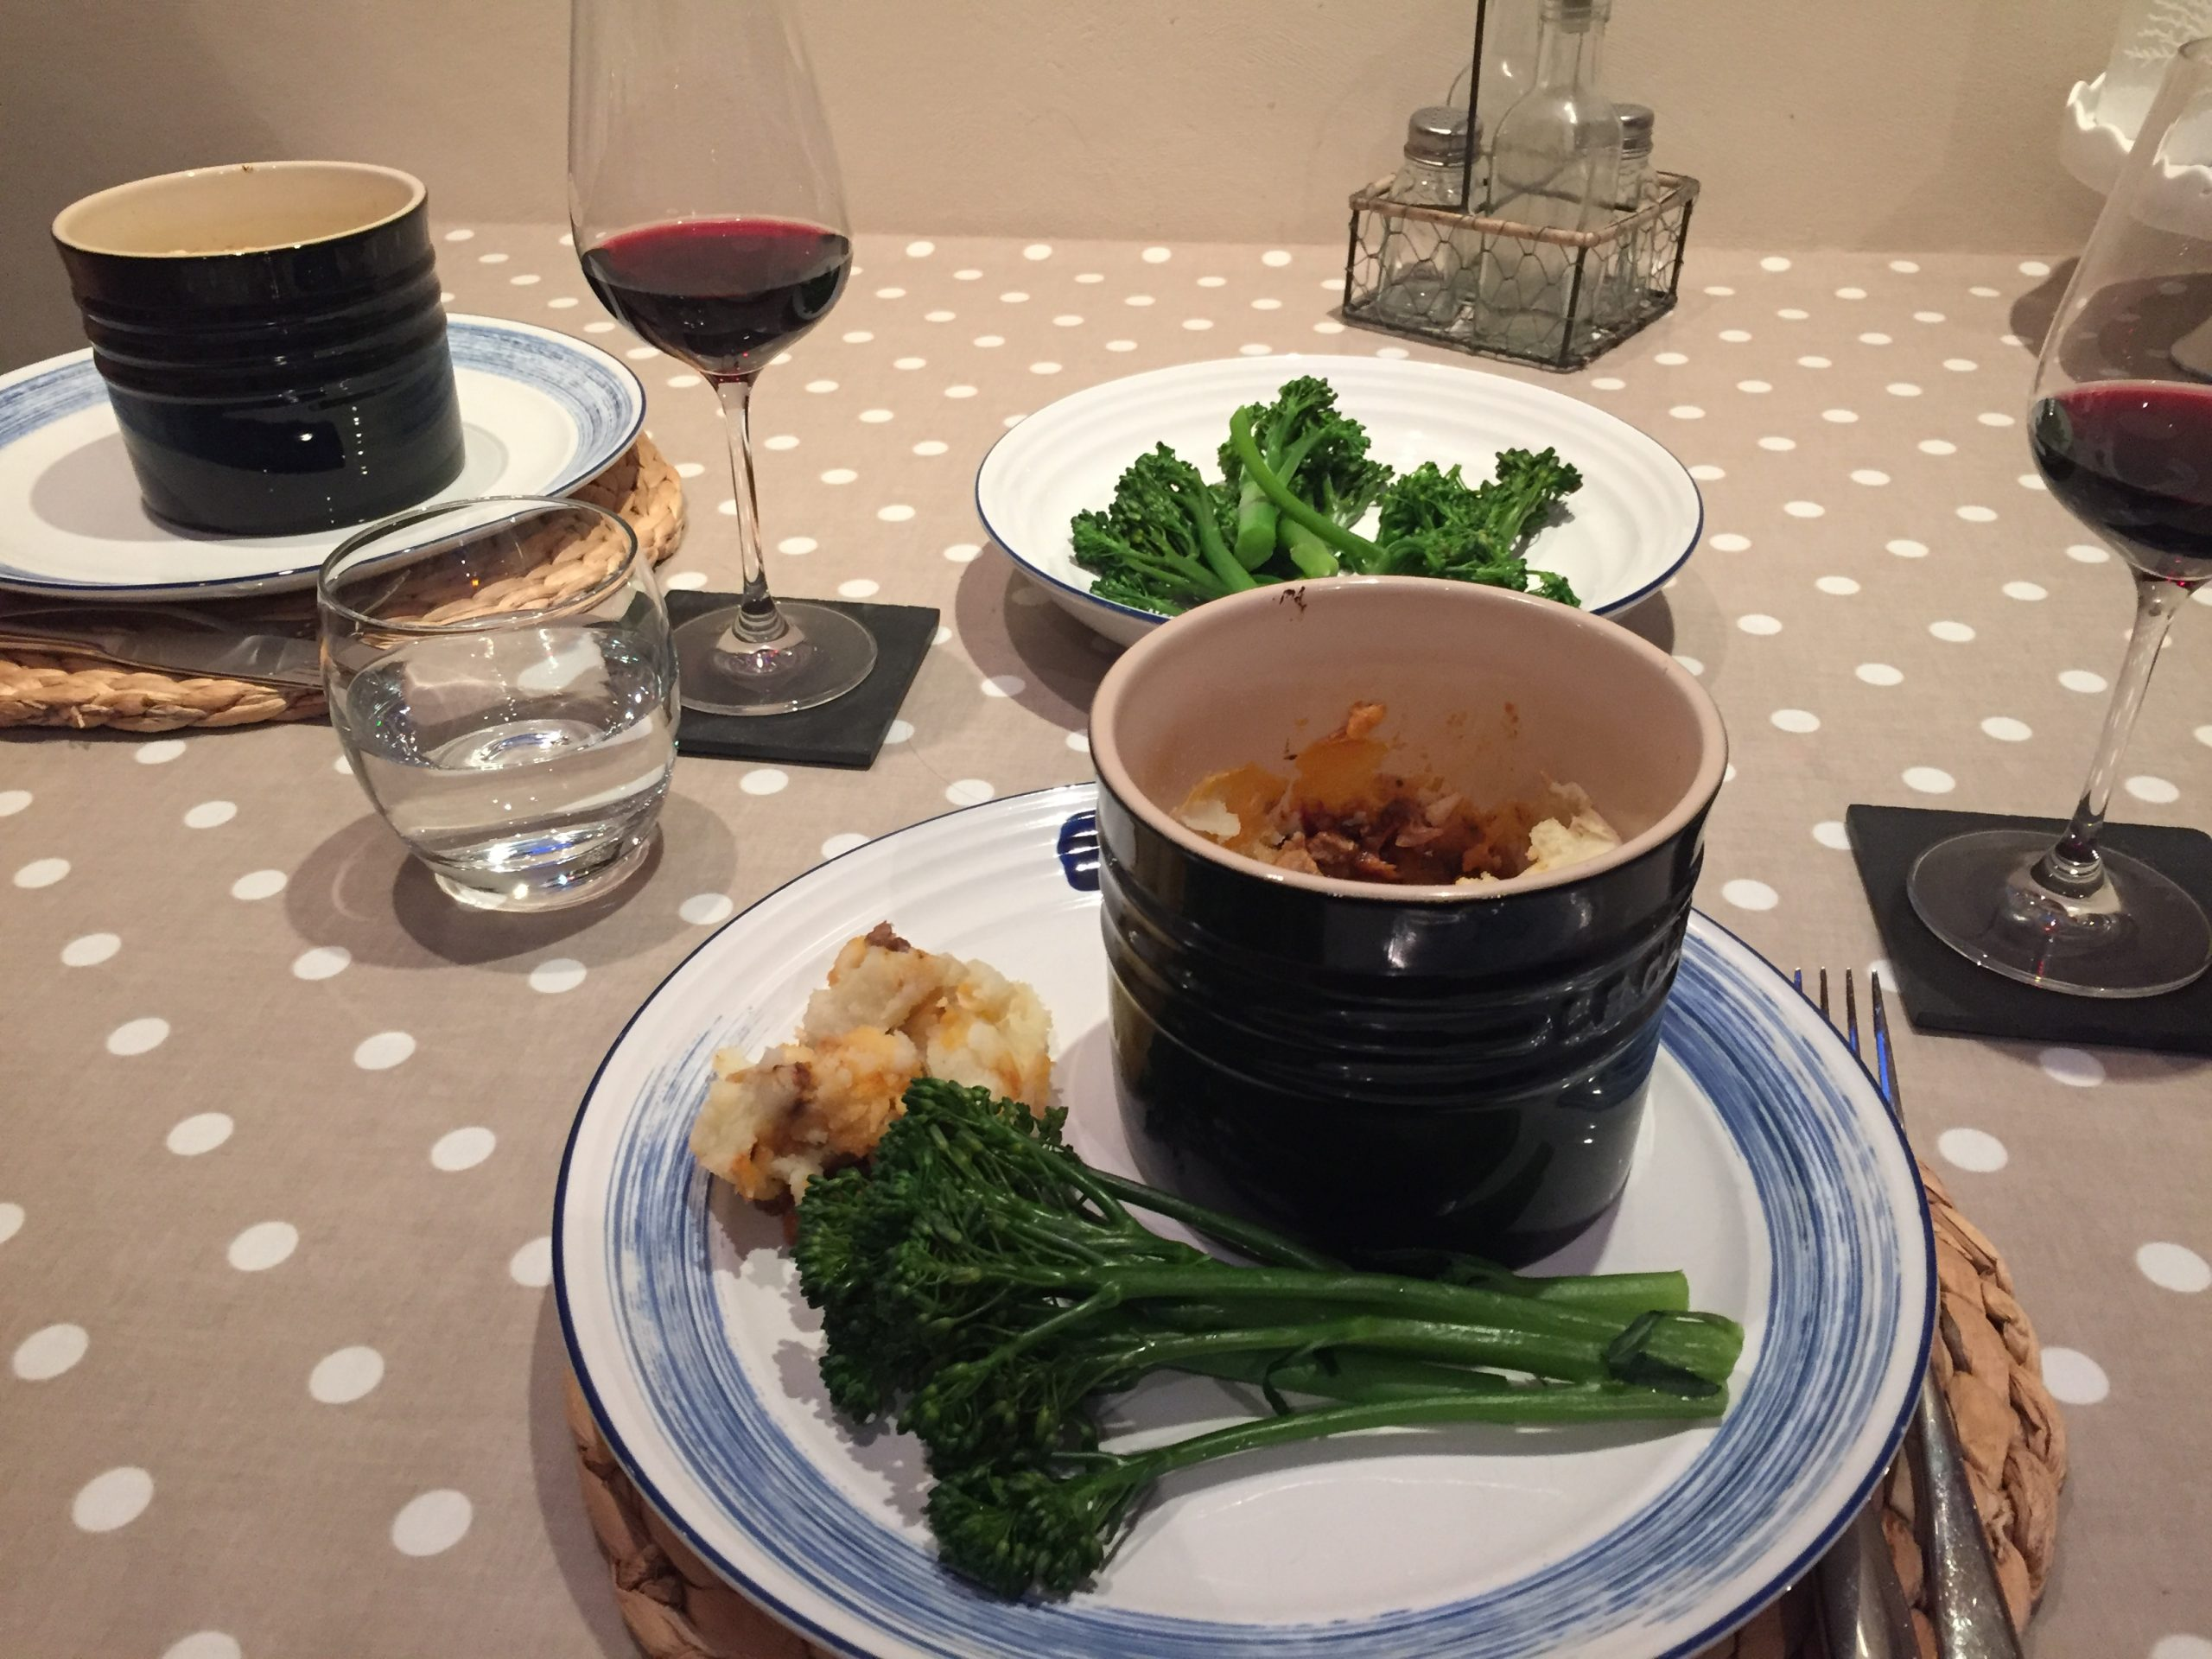 Review: London The Cookbook- we try The Ivy's famous Shepherd's Pie